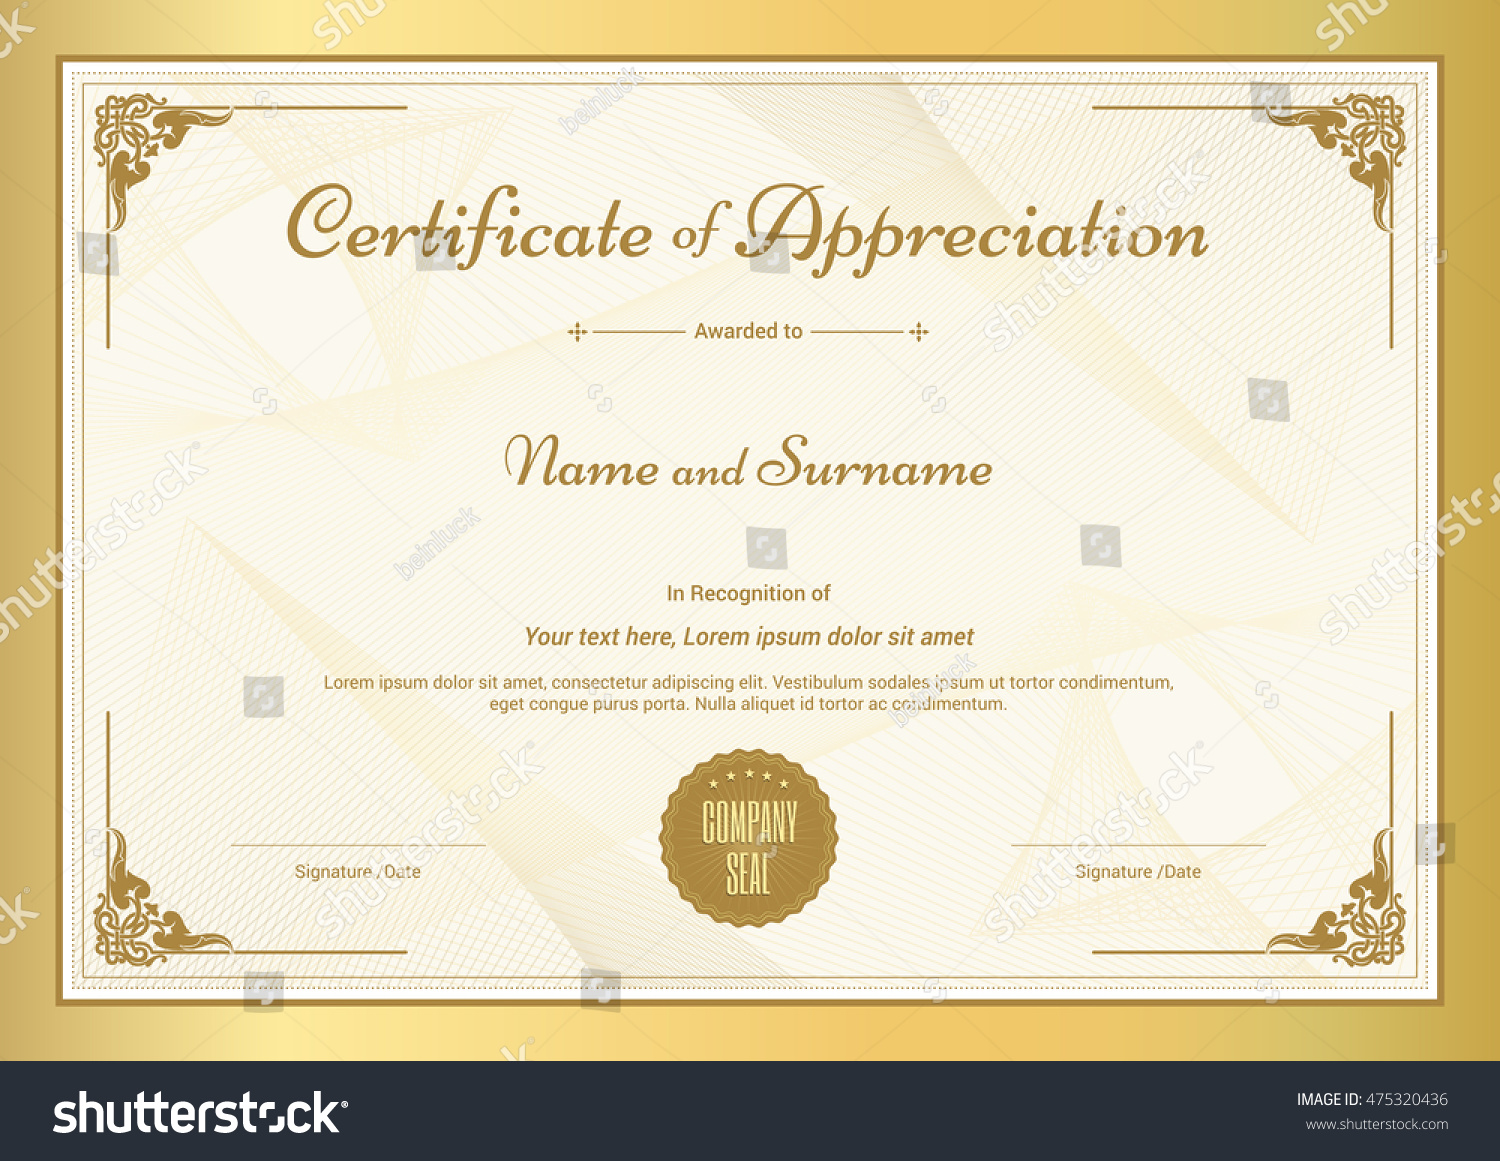 Certificate appreciation template vintage gold border certificate of appreciation template with vintage gold border yelopaper Image collections